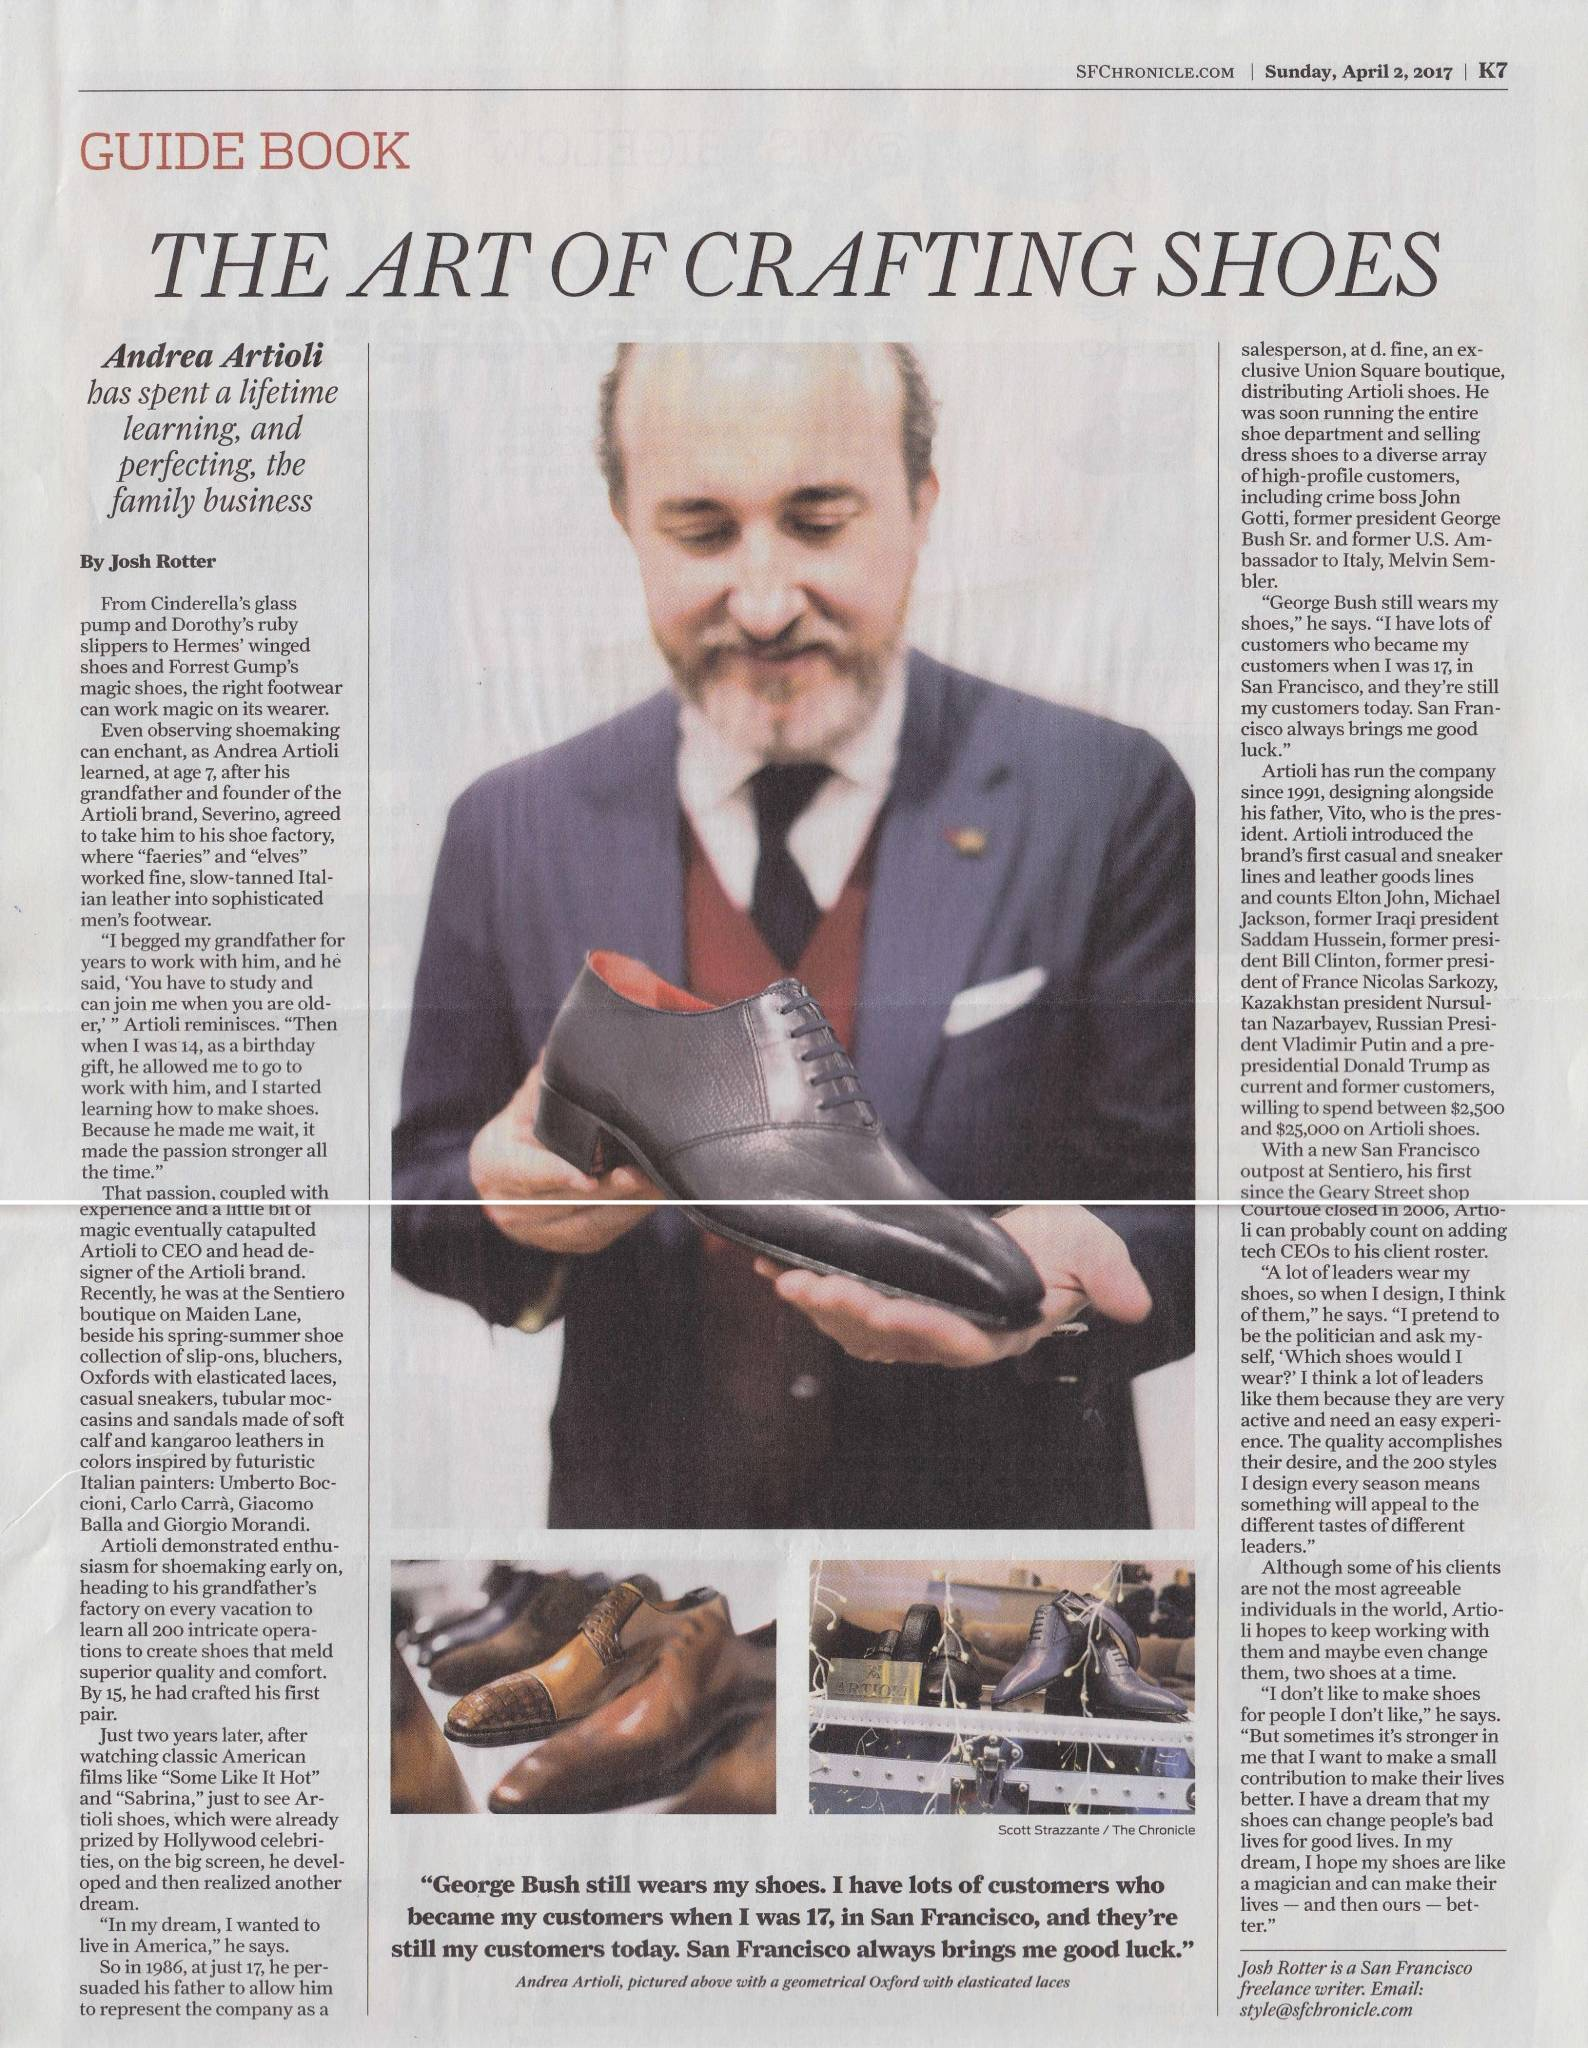 The Art of Crafting Shoes